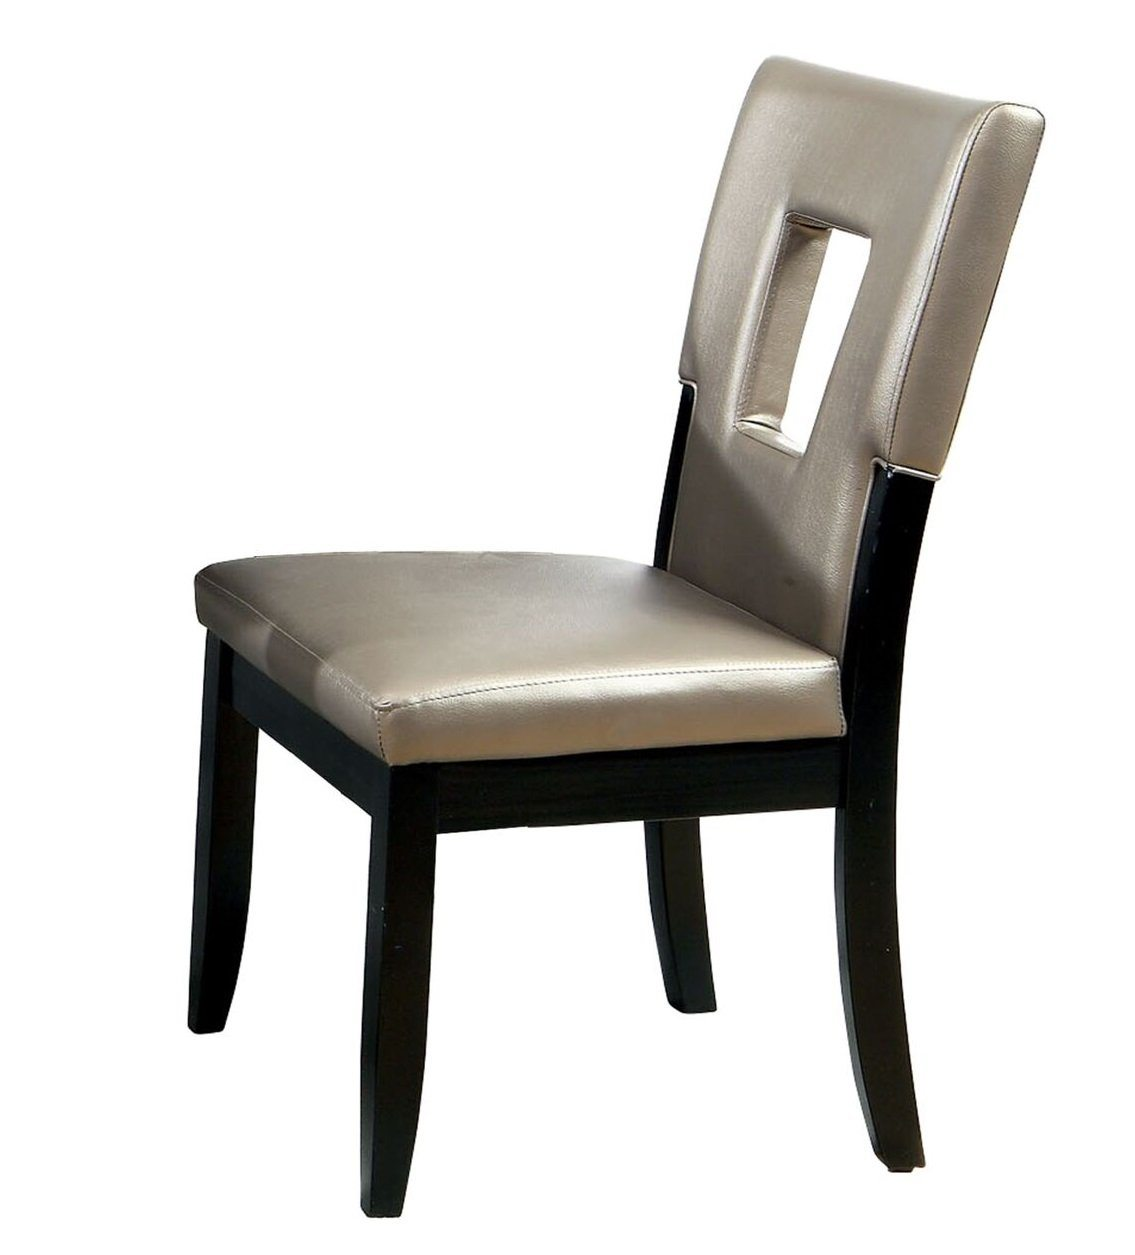 Cal Keyhole Leatherette Dining Chair Black (Set of 2) Furniture Enitial Lab